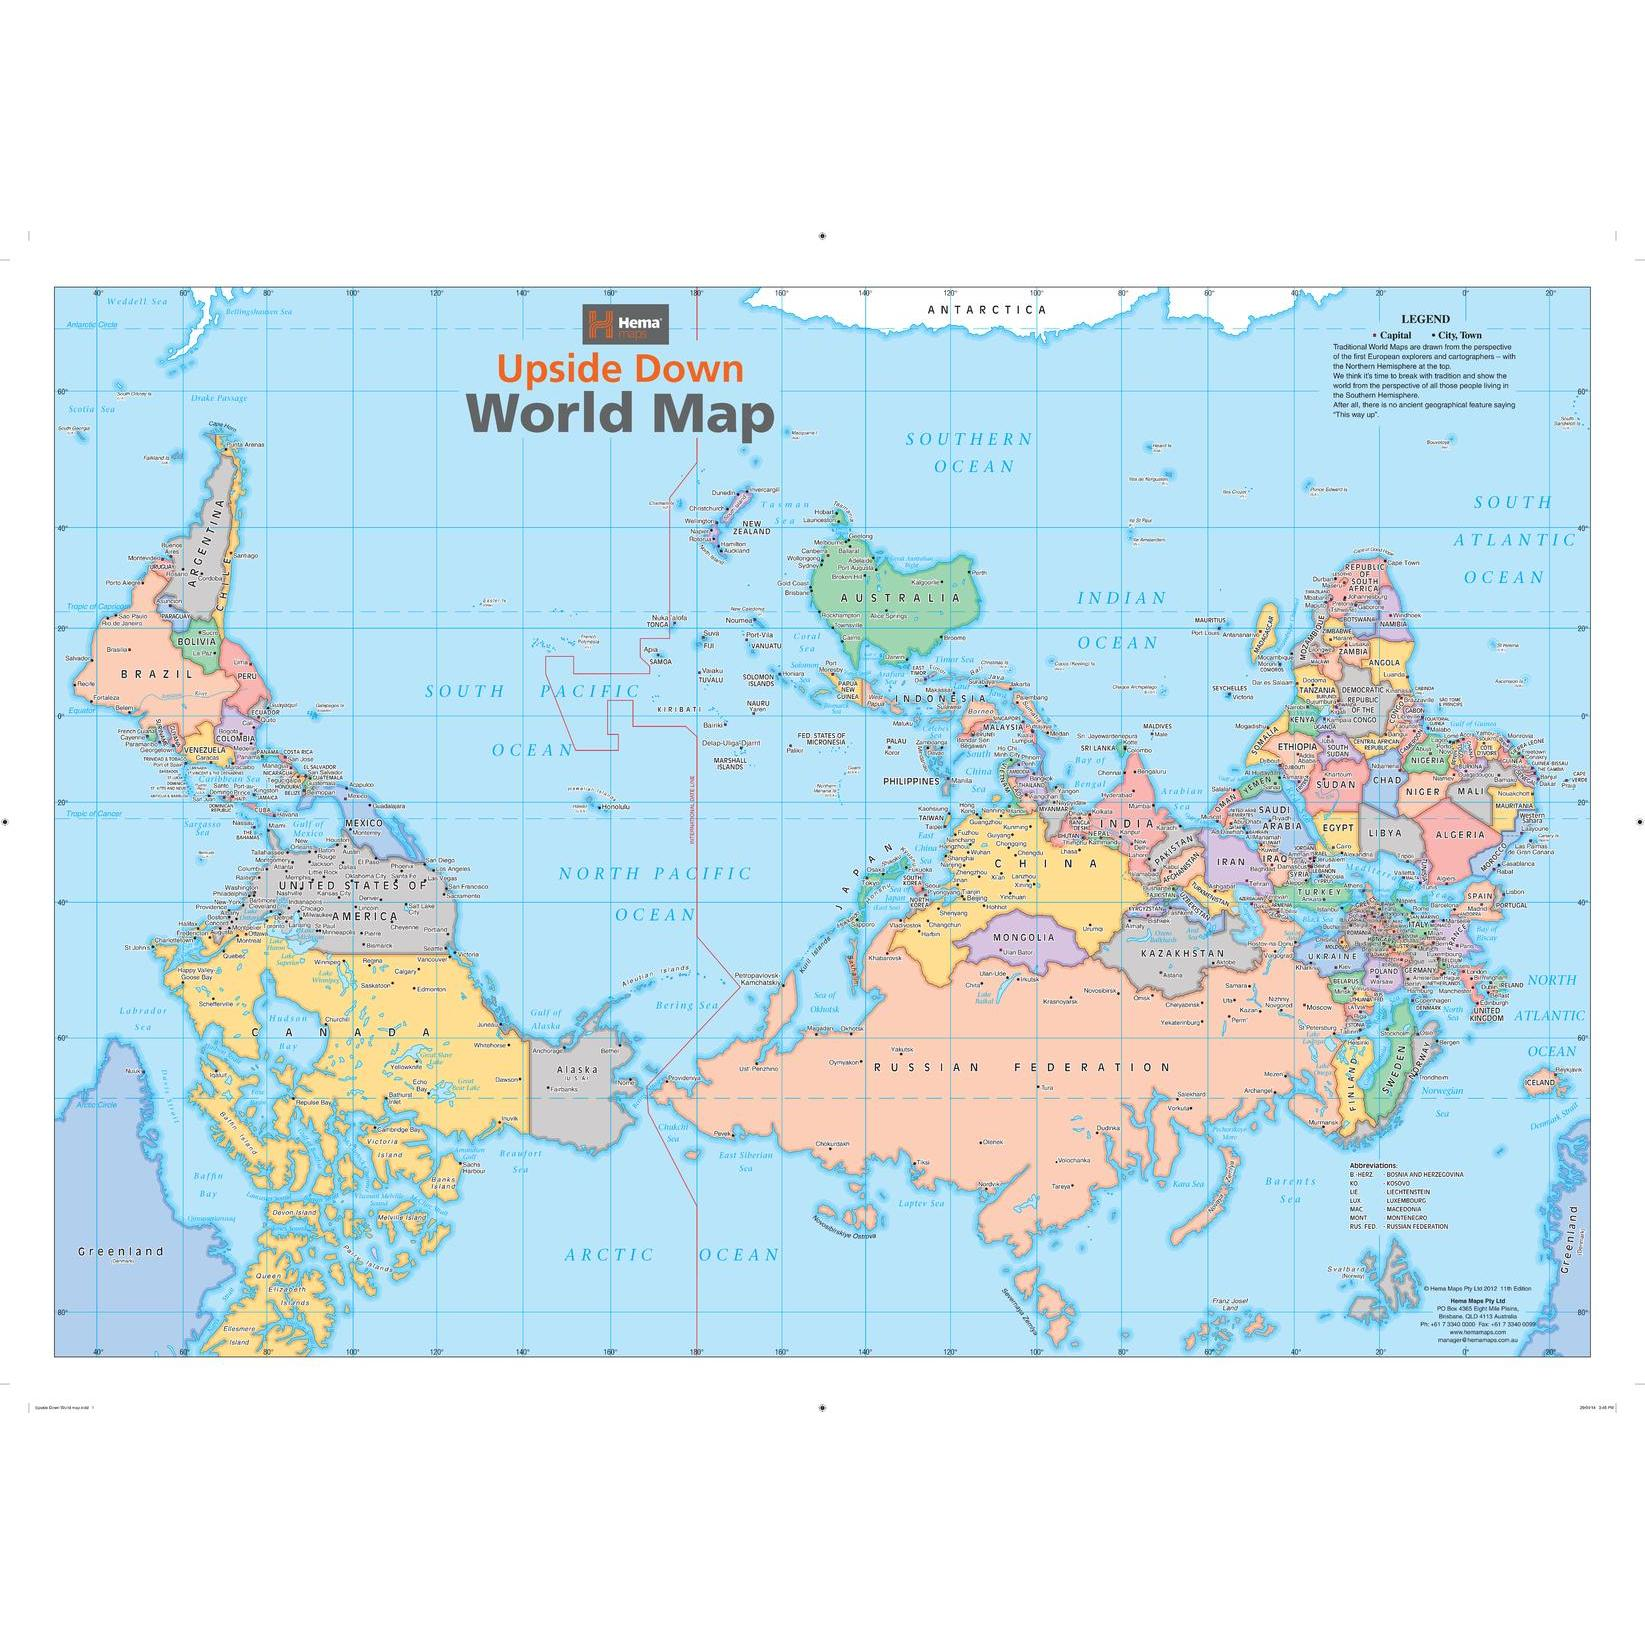 Upside Down World Map Upside Down World Wall Map   The Map Shop